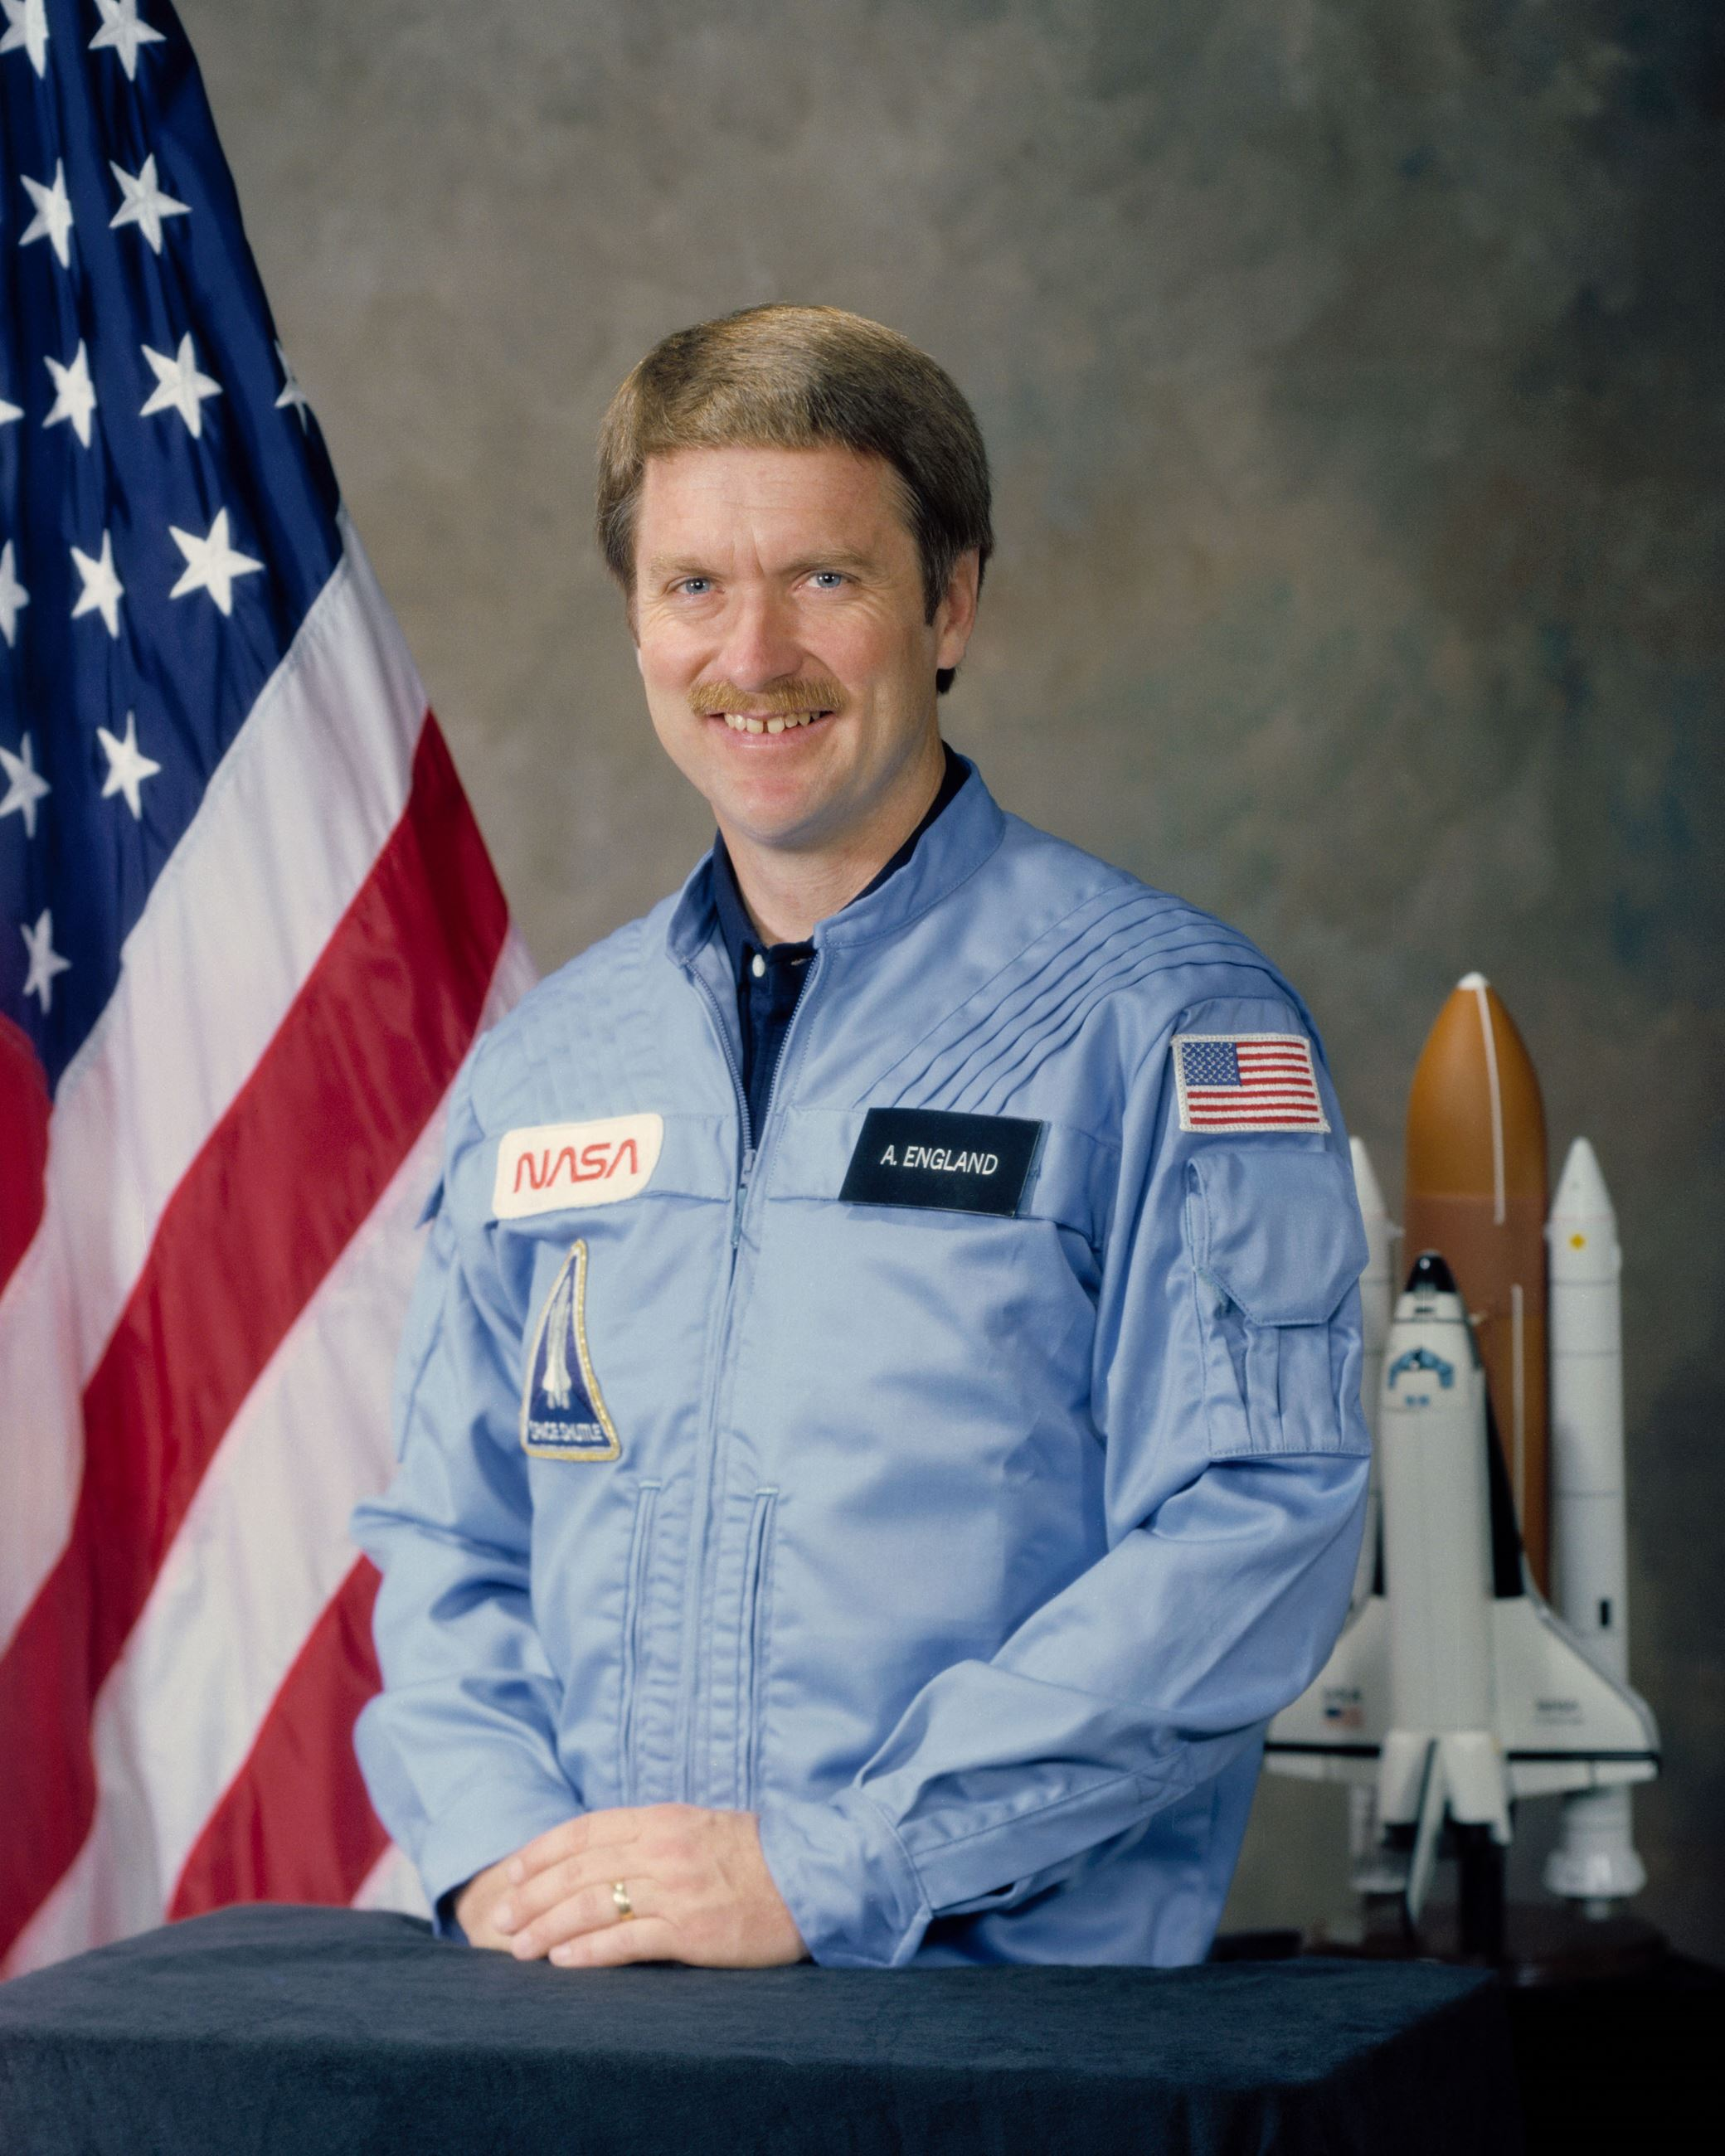 Dr. Tony England 1982 NASA portrait